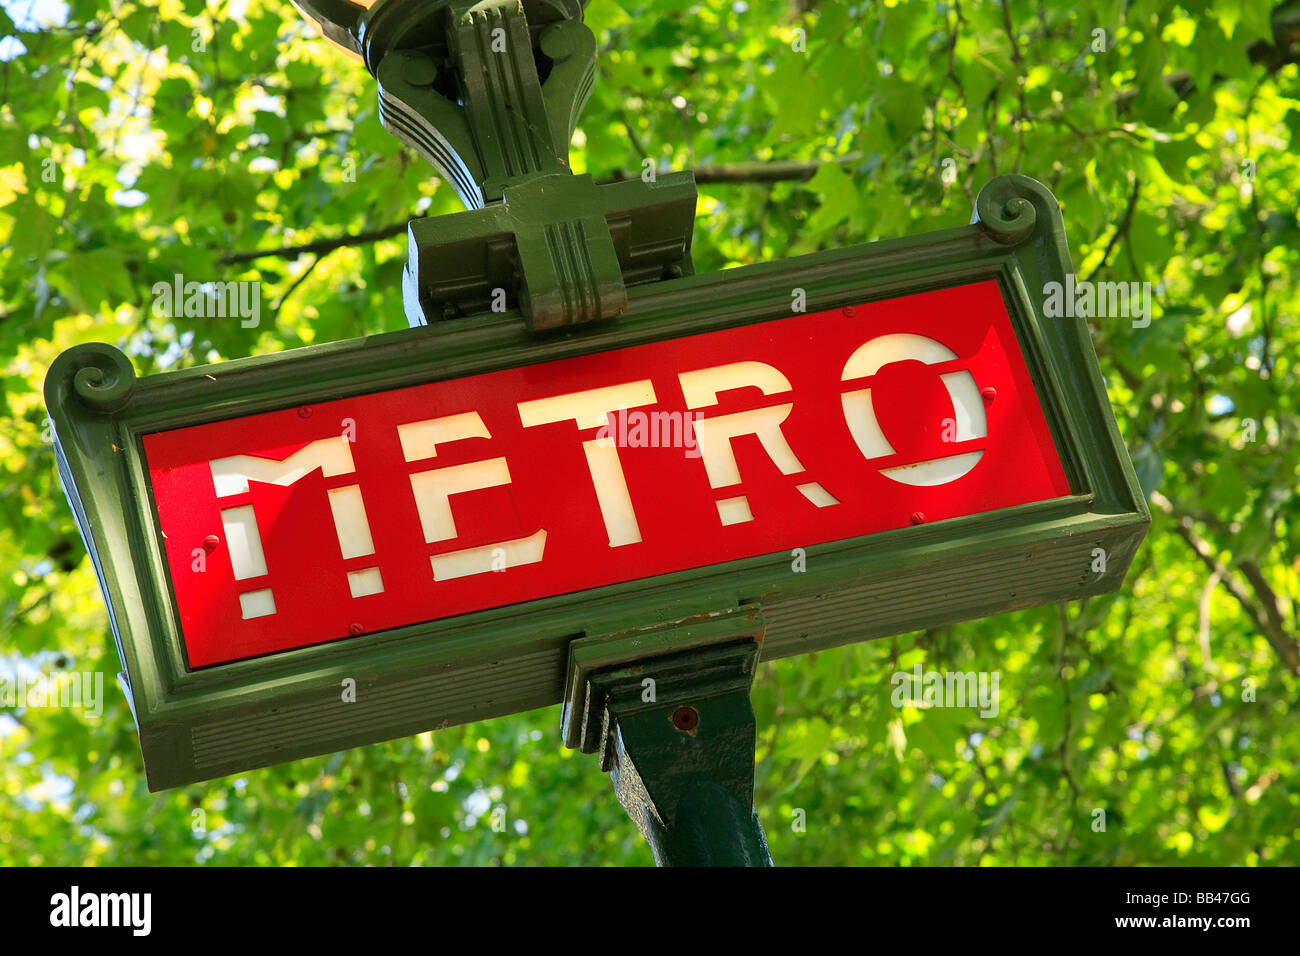 METRO SIGN IN PARIS FRANCE - Stock Image